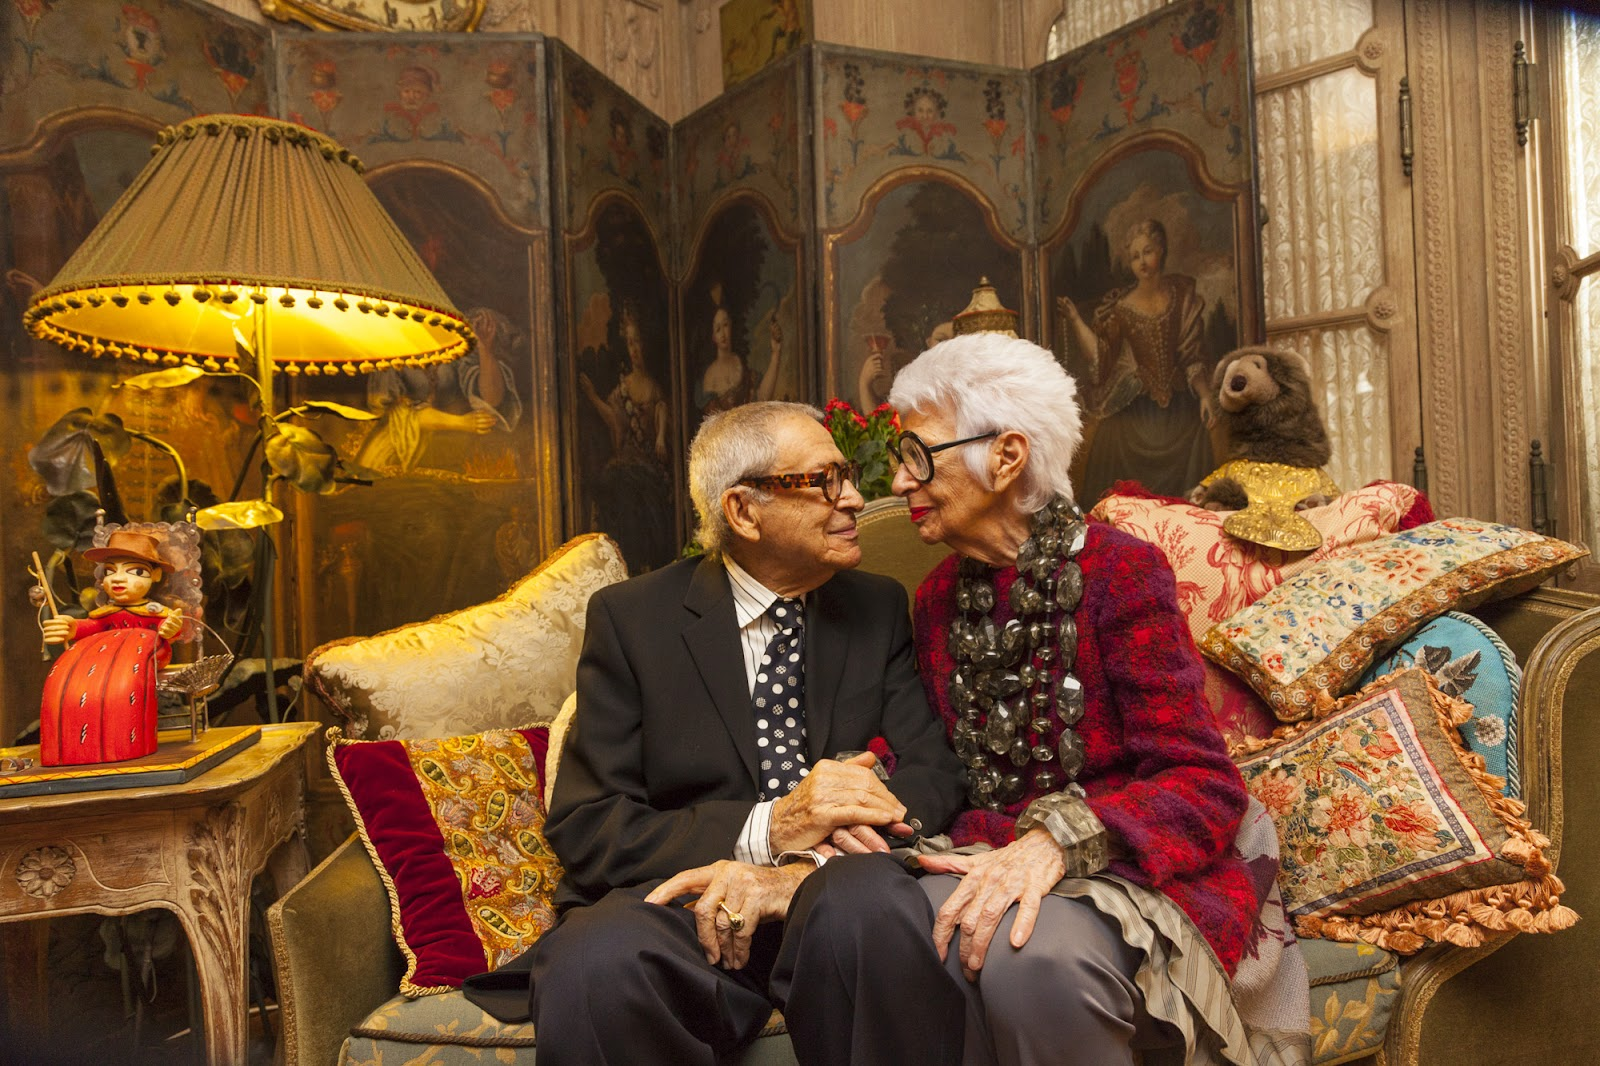 Iris Apfel and her husband Carl together in their home